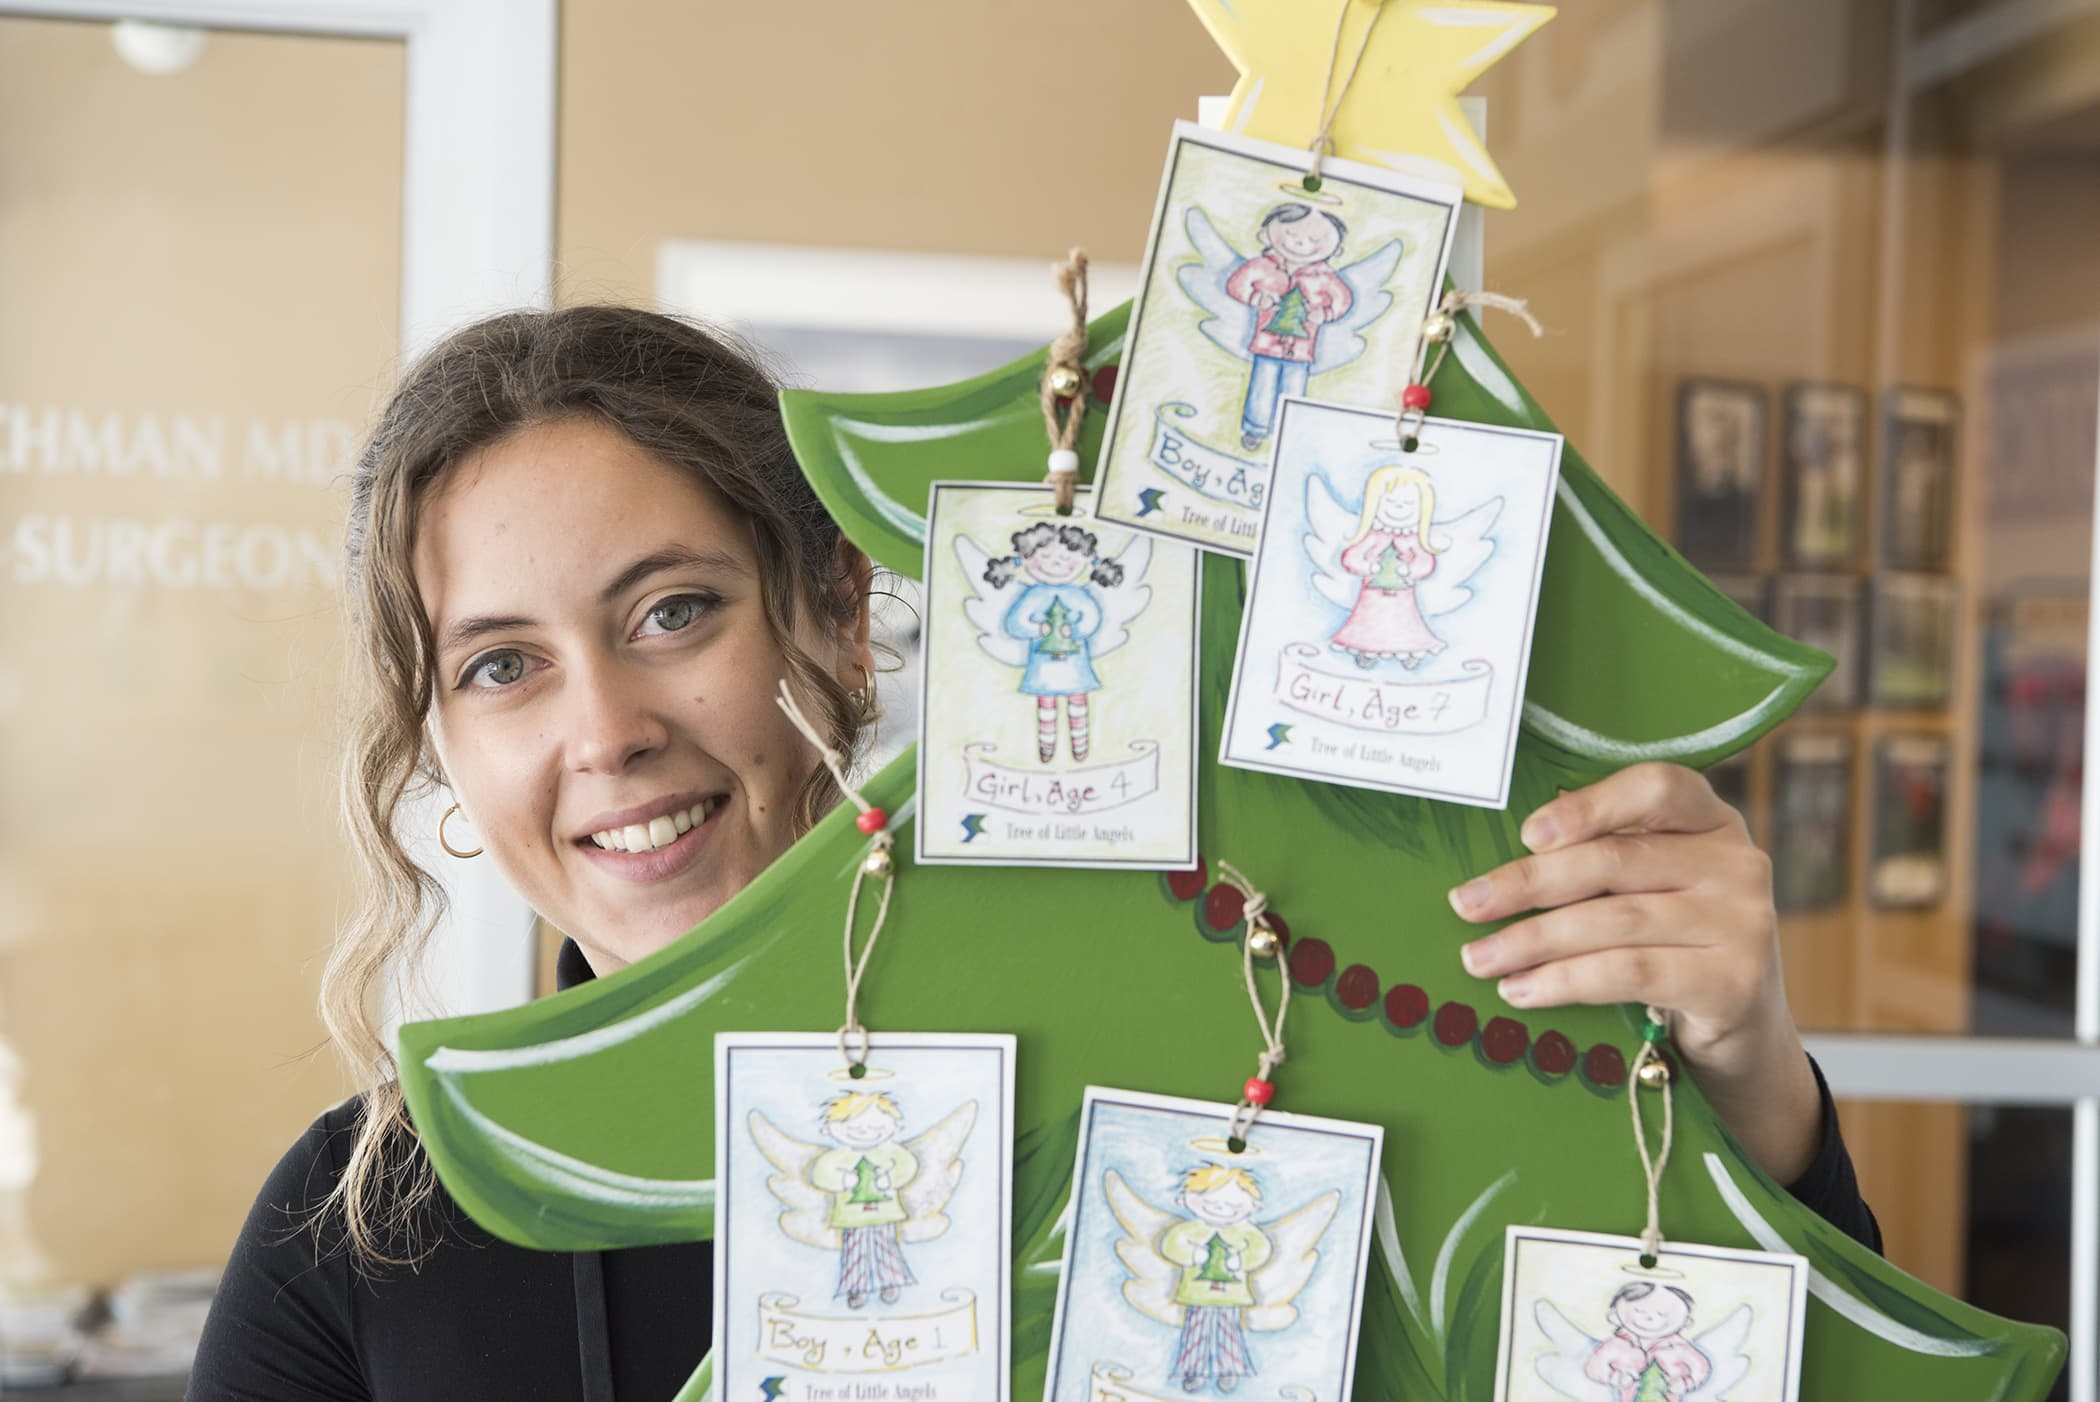 The Tree of Little Angels program is helping local children in need